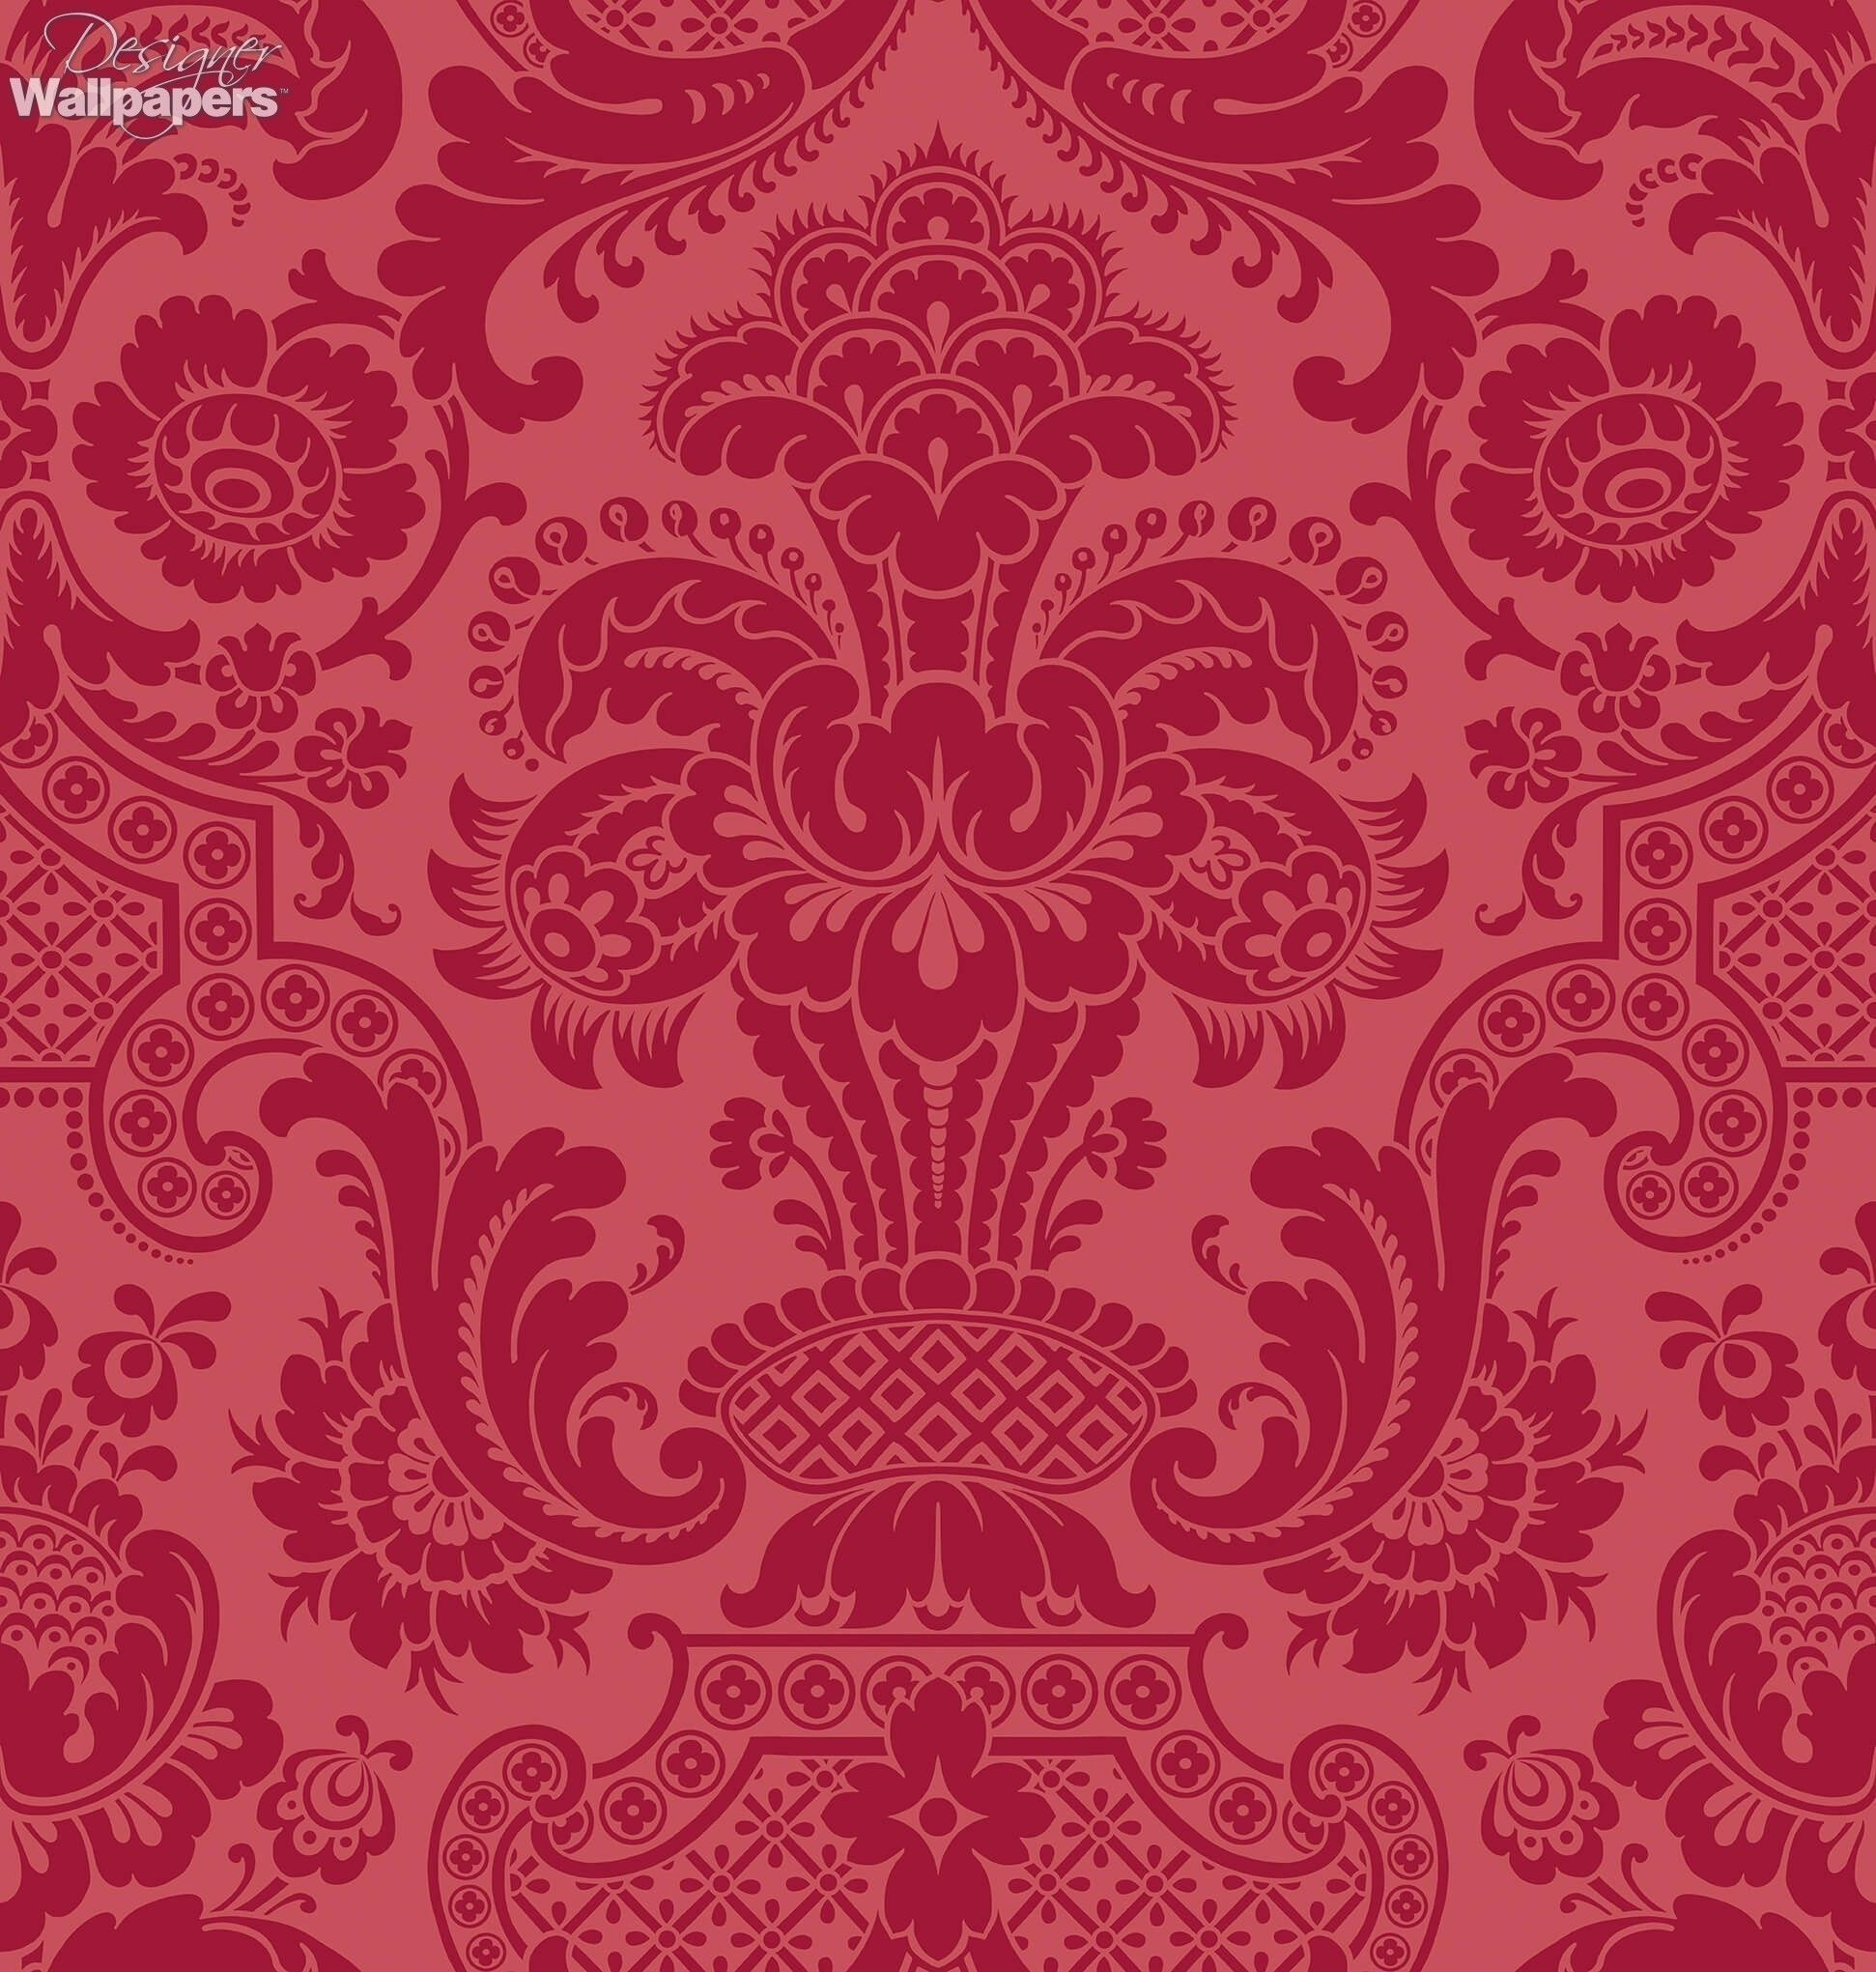 Is Wallpaper Expensive strikingly designed, this petrouchka flock wallpaper is rich with